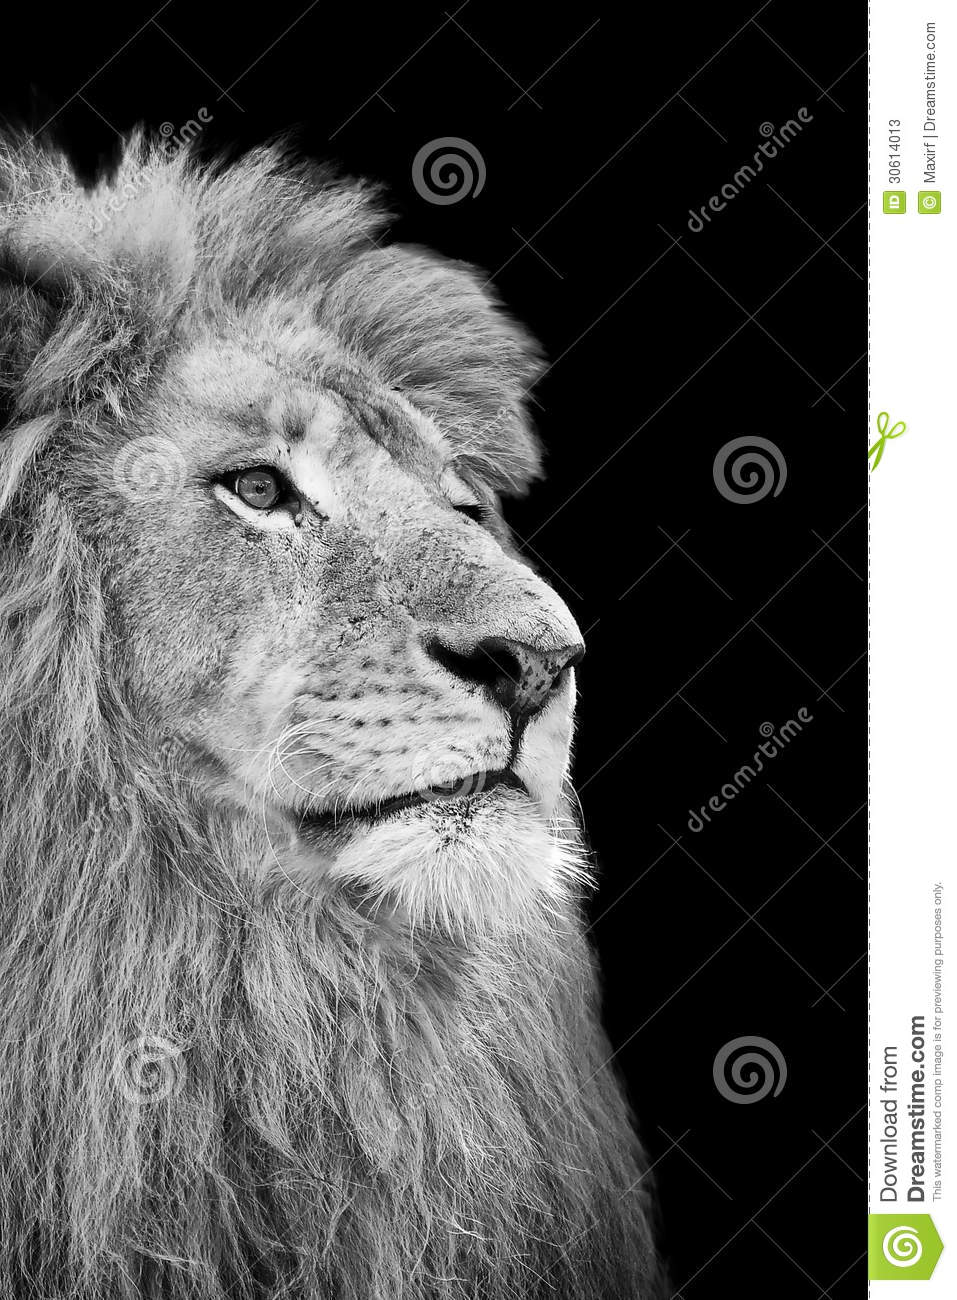 Black And White Isolated Lion Face Stock Photos - Image ...